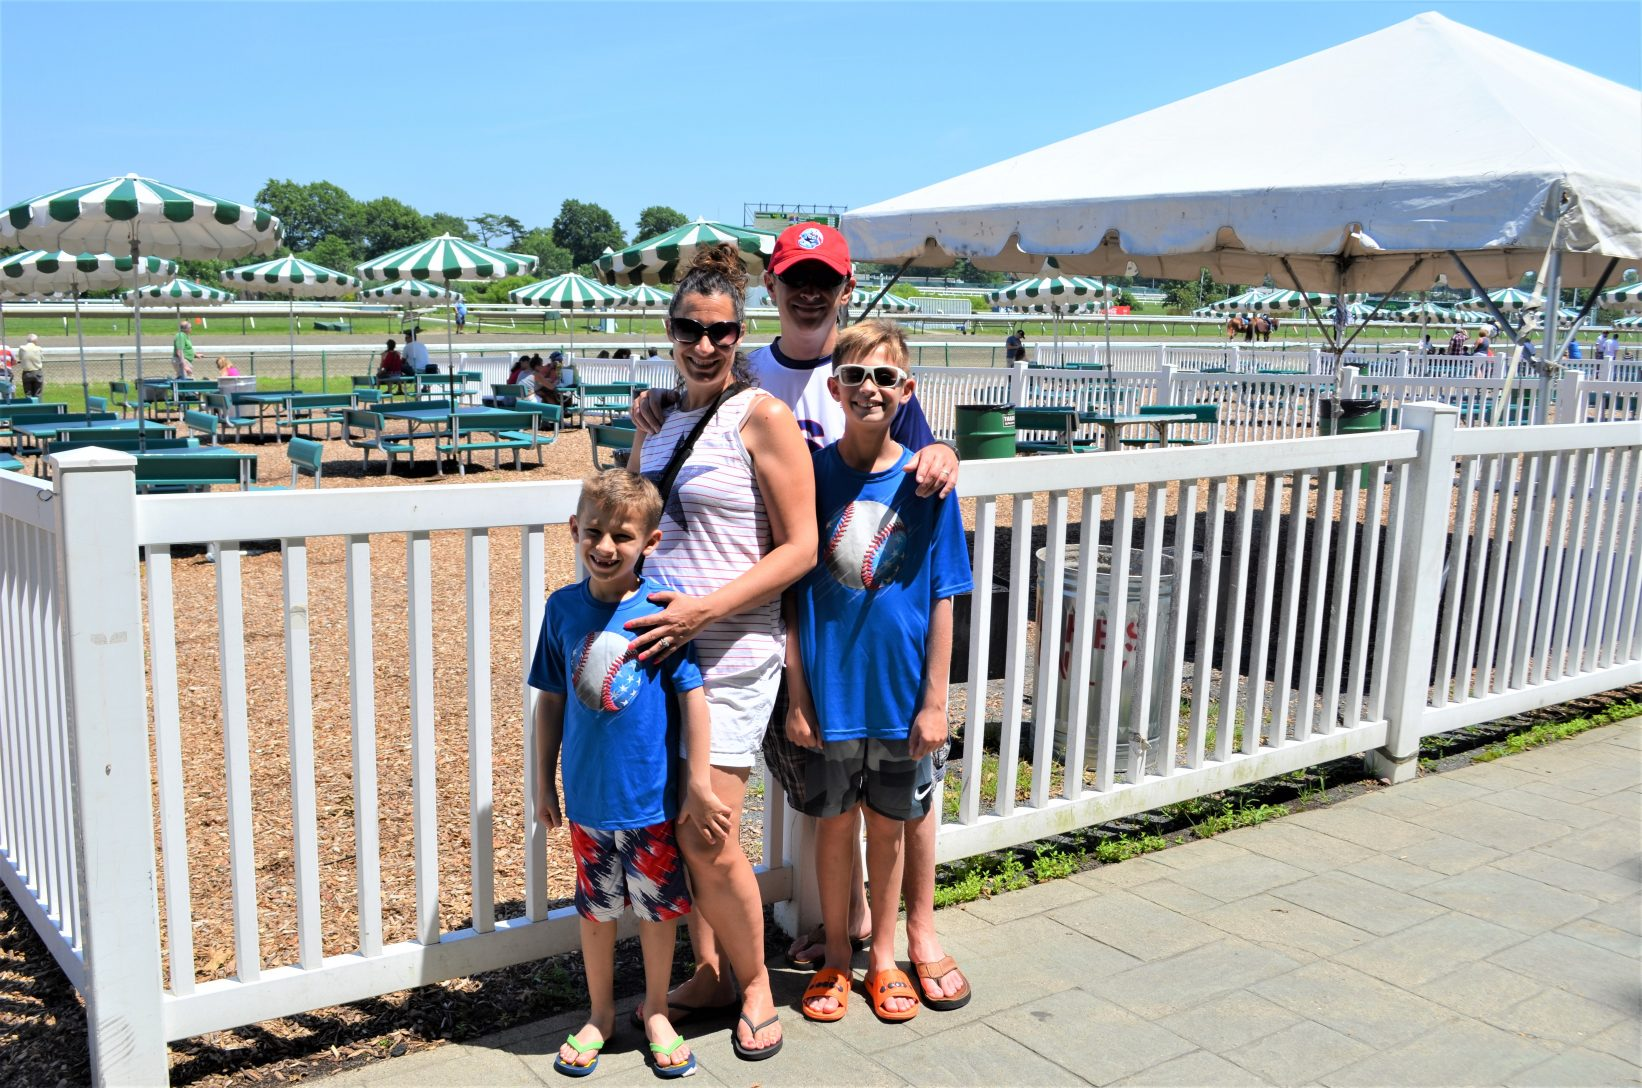 Things To Do - Monmouth Park